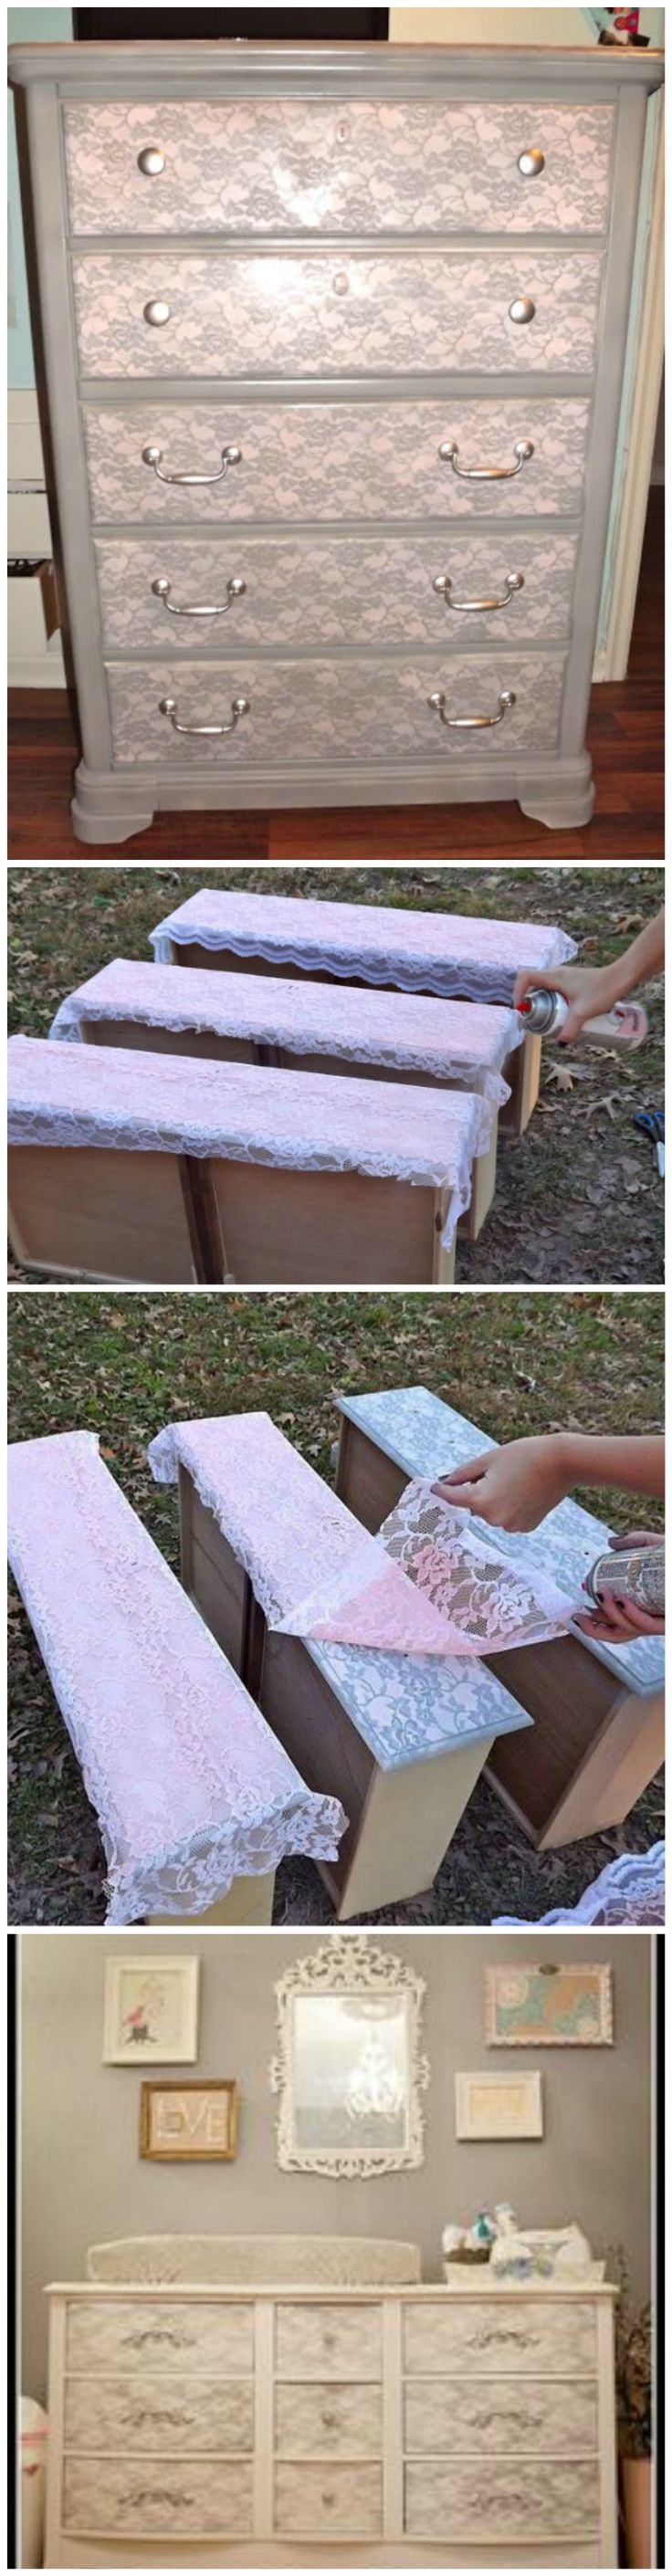 DIY Project: Refinished Dresser Using Lace